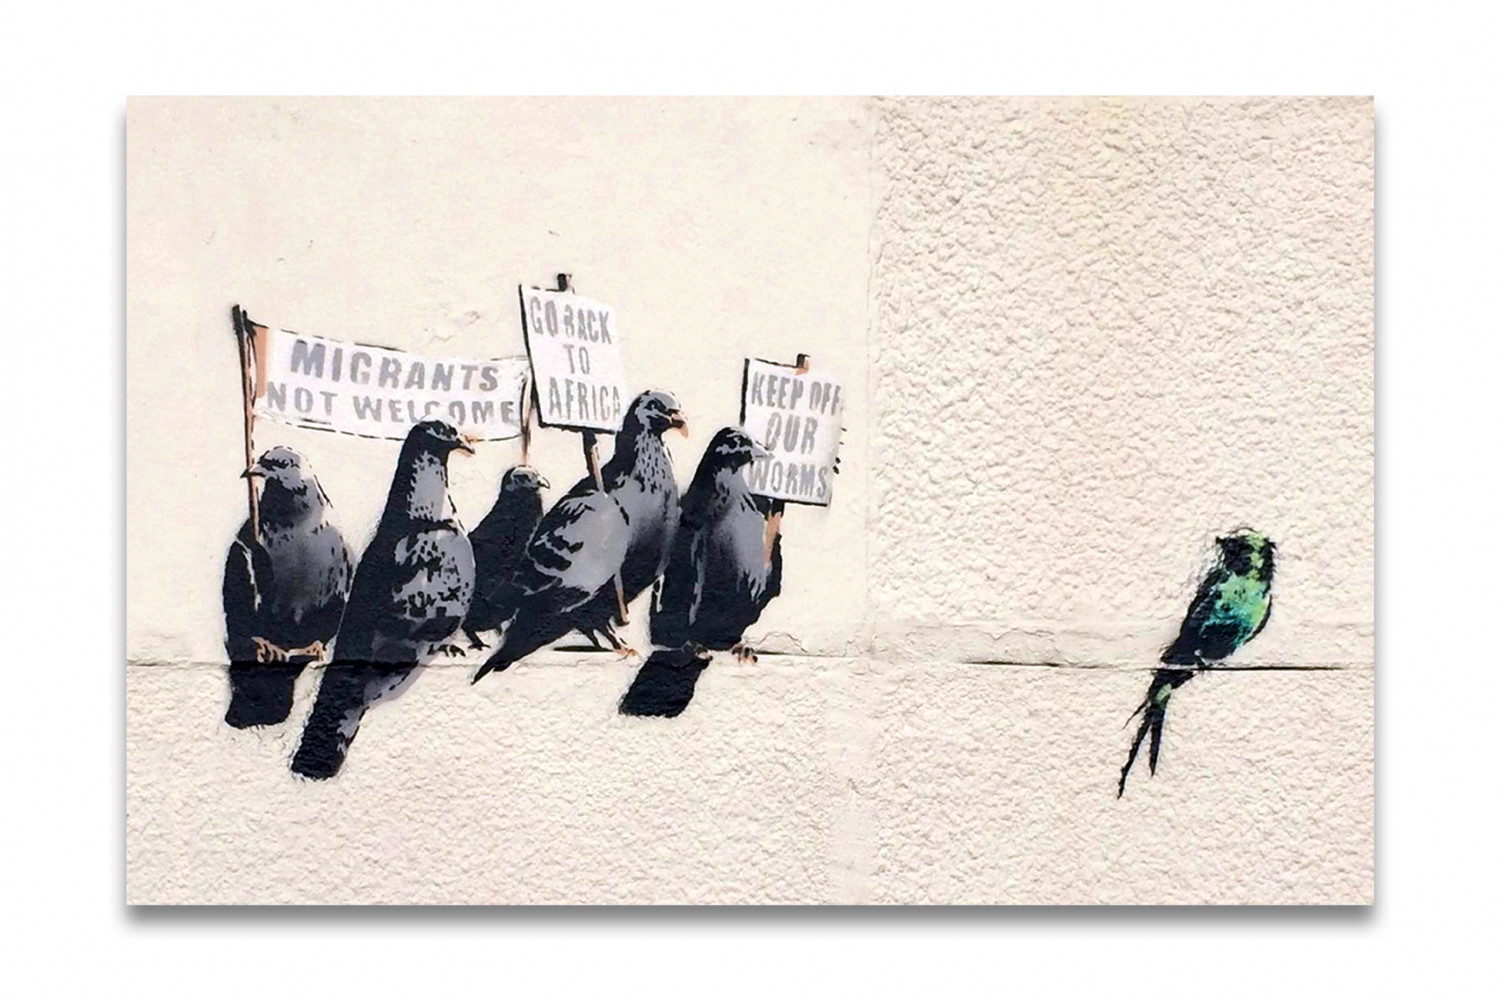 kunstdruck auf leinwand banksy immigration birds 90x60cm. Black Bedroom Furniture Sets. Home Design Ideas